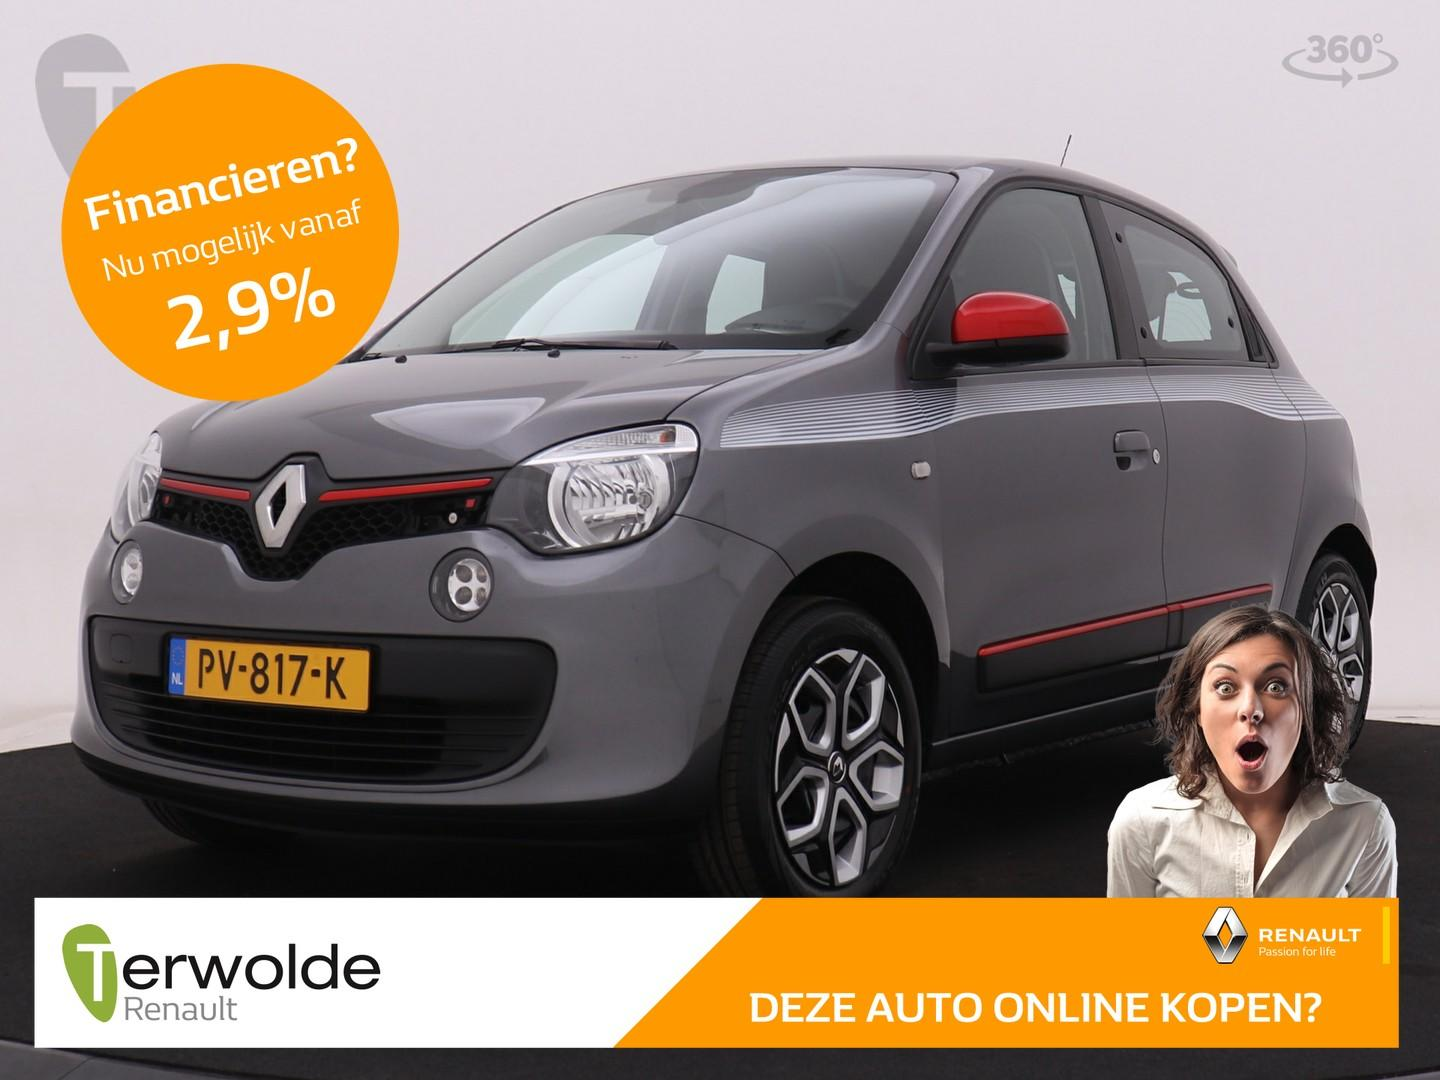 Renault Twingo 1.0 sce collection airco i audio i bluetooth i trekhaak (tbv fietsendrager)